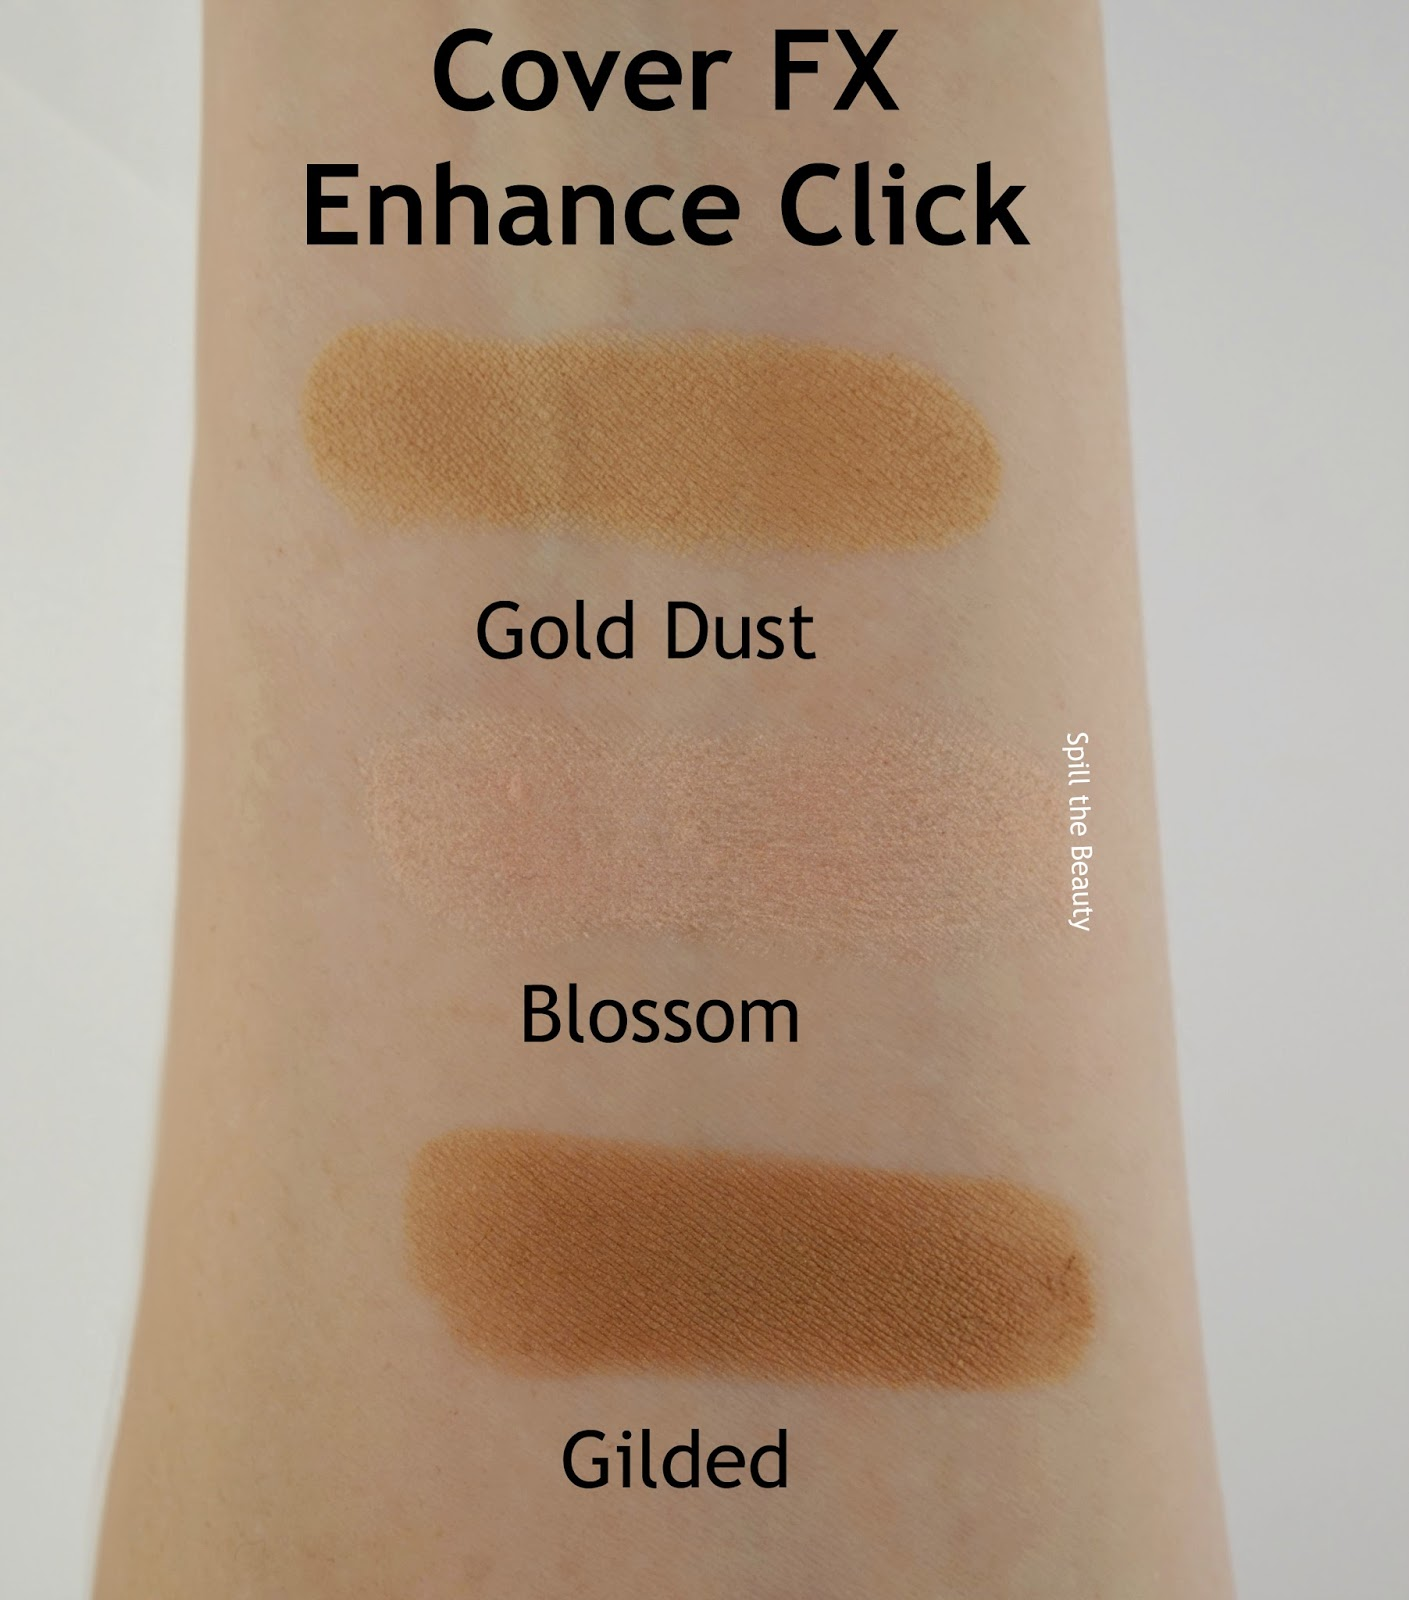 cover fx enhance click review swatches gold dust, blossom, gilded arm swatches